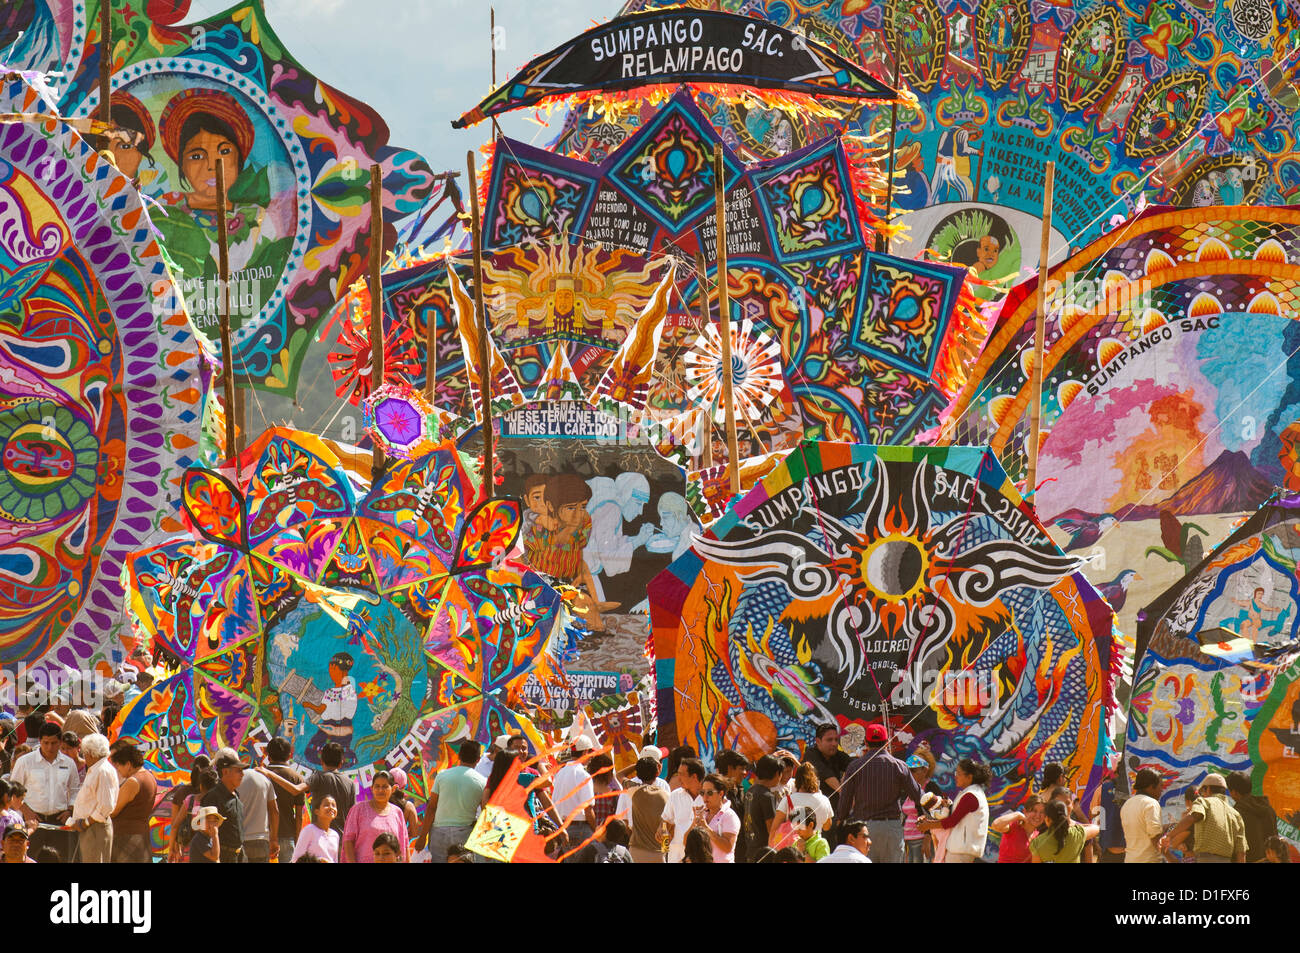 Day Of The Dead kites (barriletes) ceremony in cemetery of Sumpango, Guatemala, Central America - Stock Image